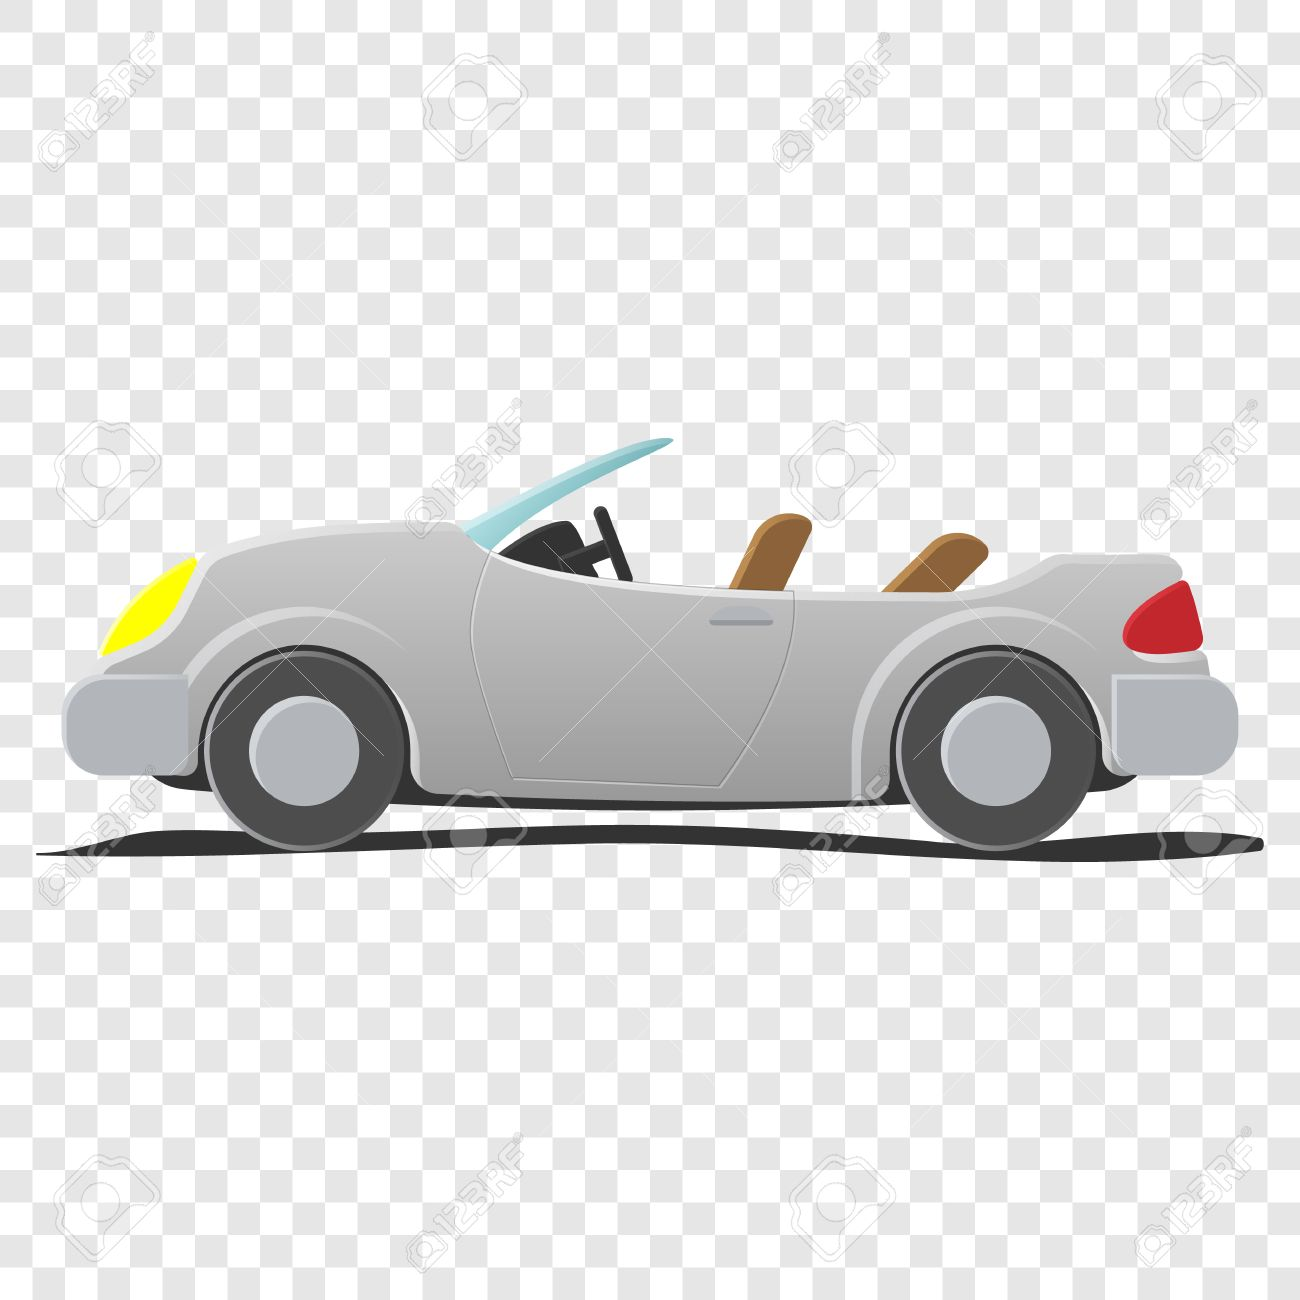 Convertible Cartoon Car Illustration On Transparent Background